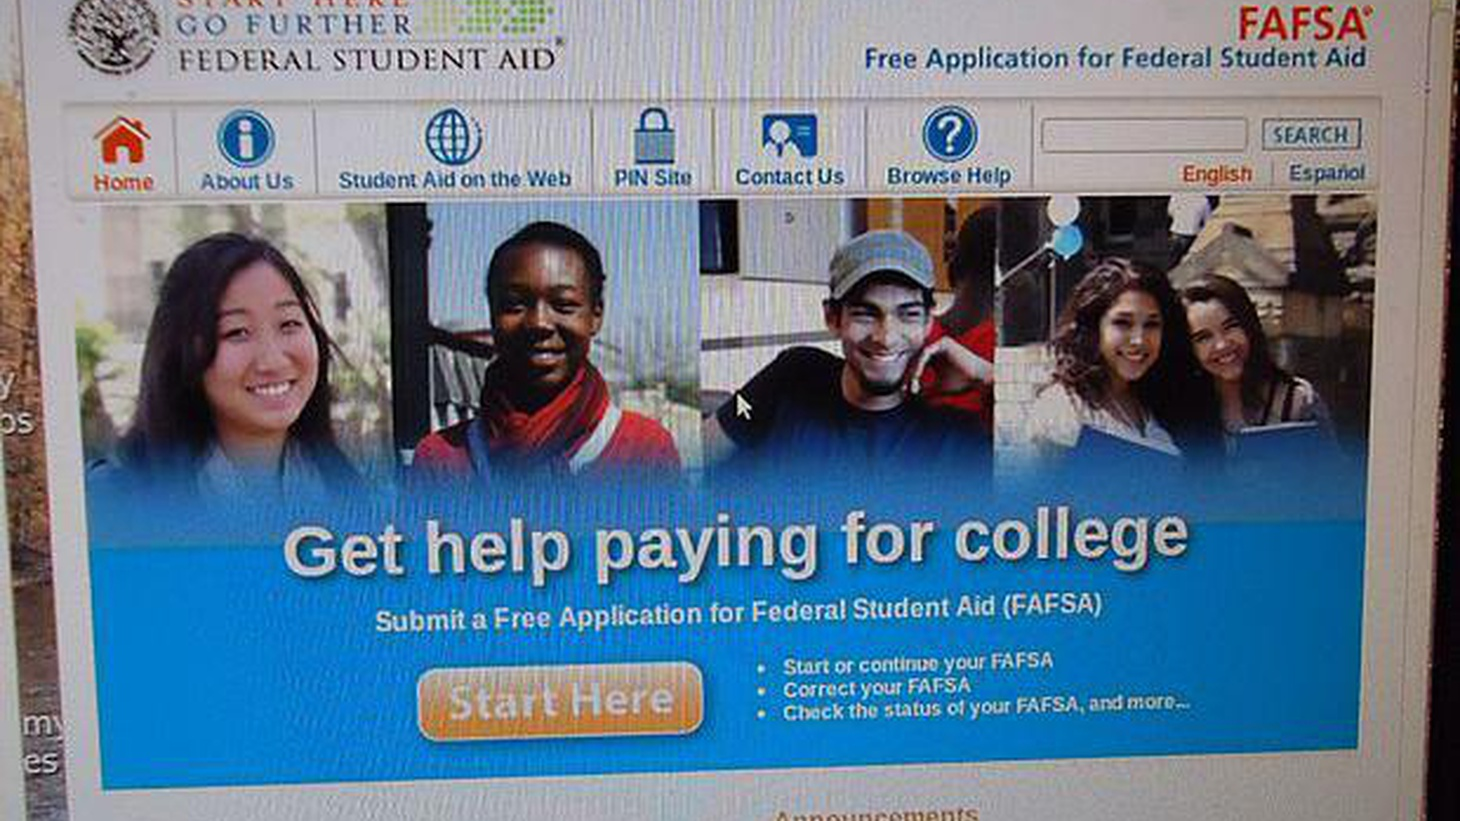 A new report says basing financial aid on college enrollment is not enough. Should it be keyed to graduation? Can it be adjusted without hurting those it's designed to help?